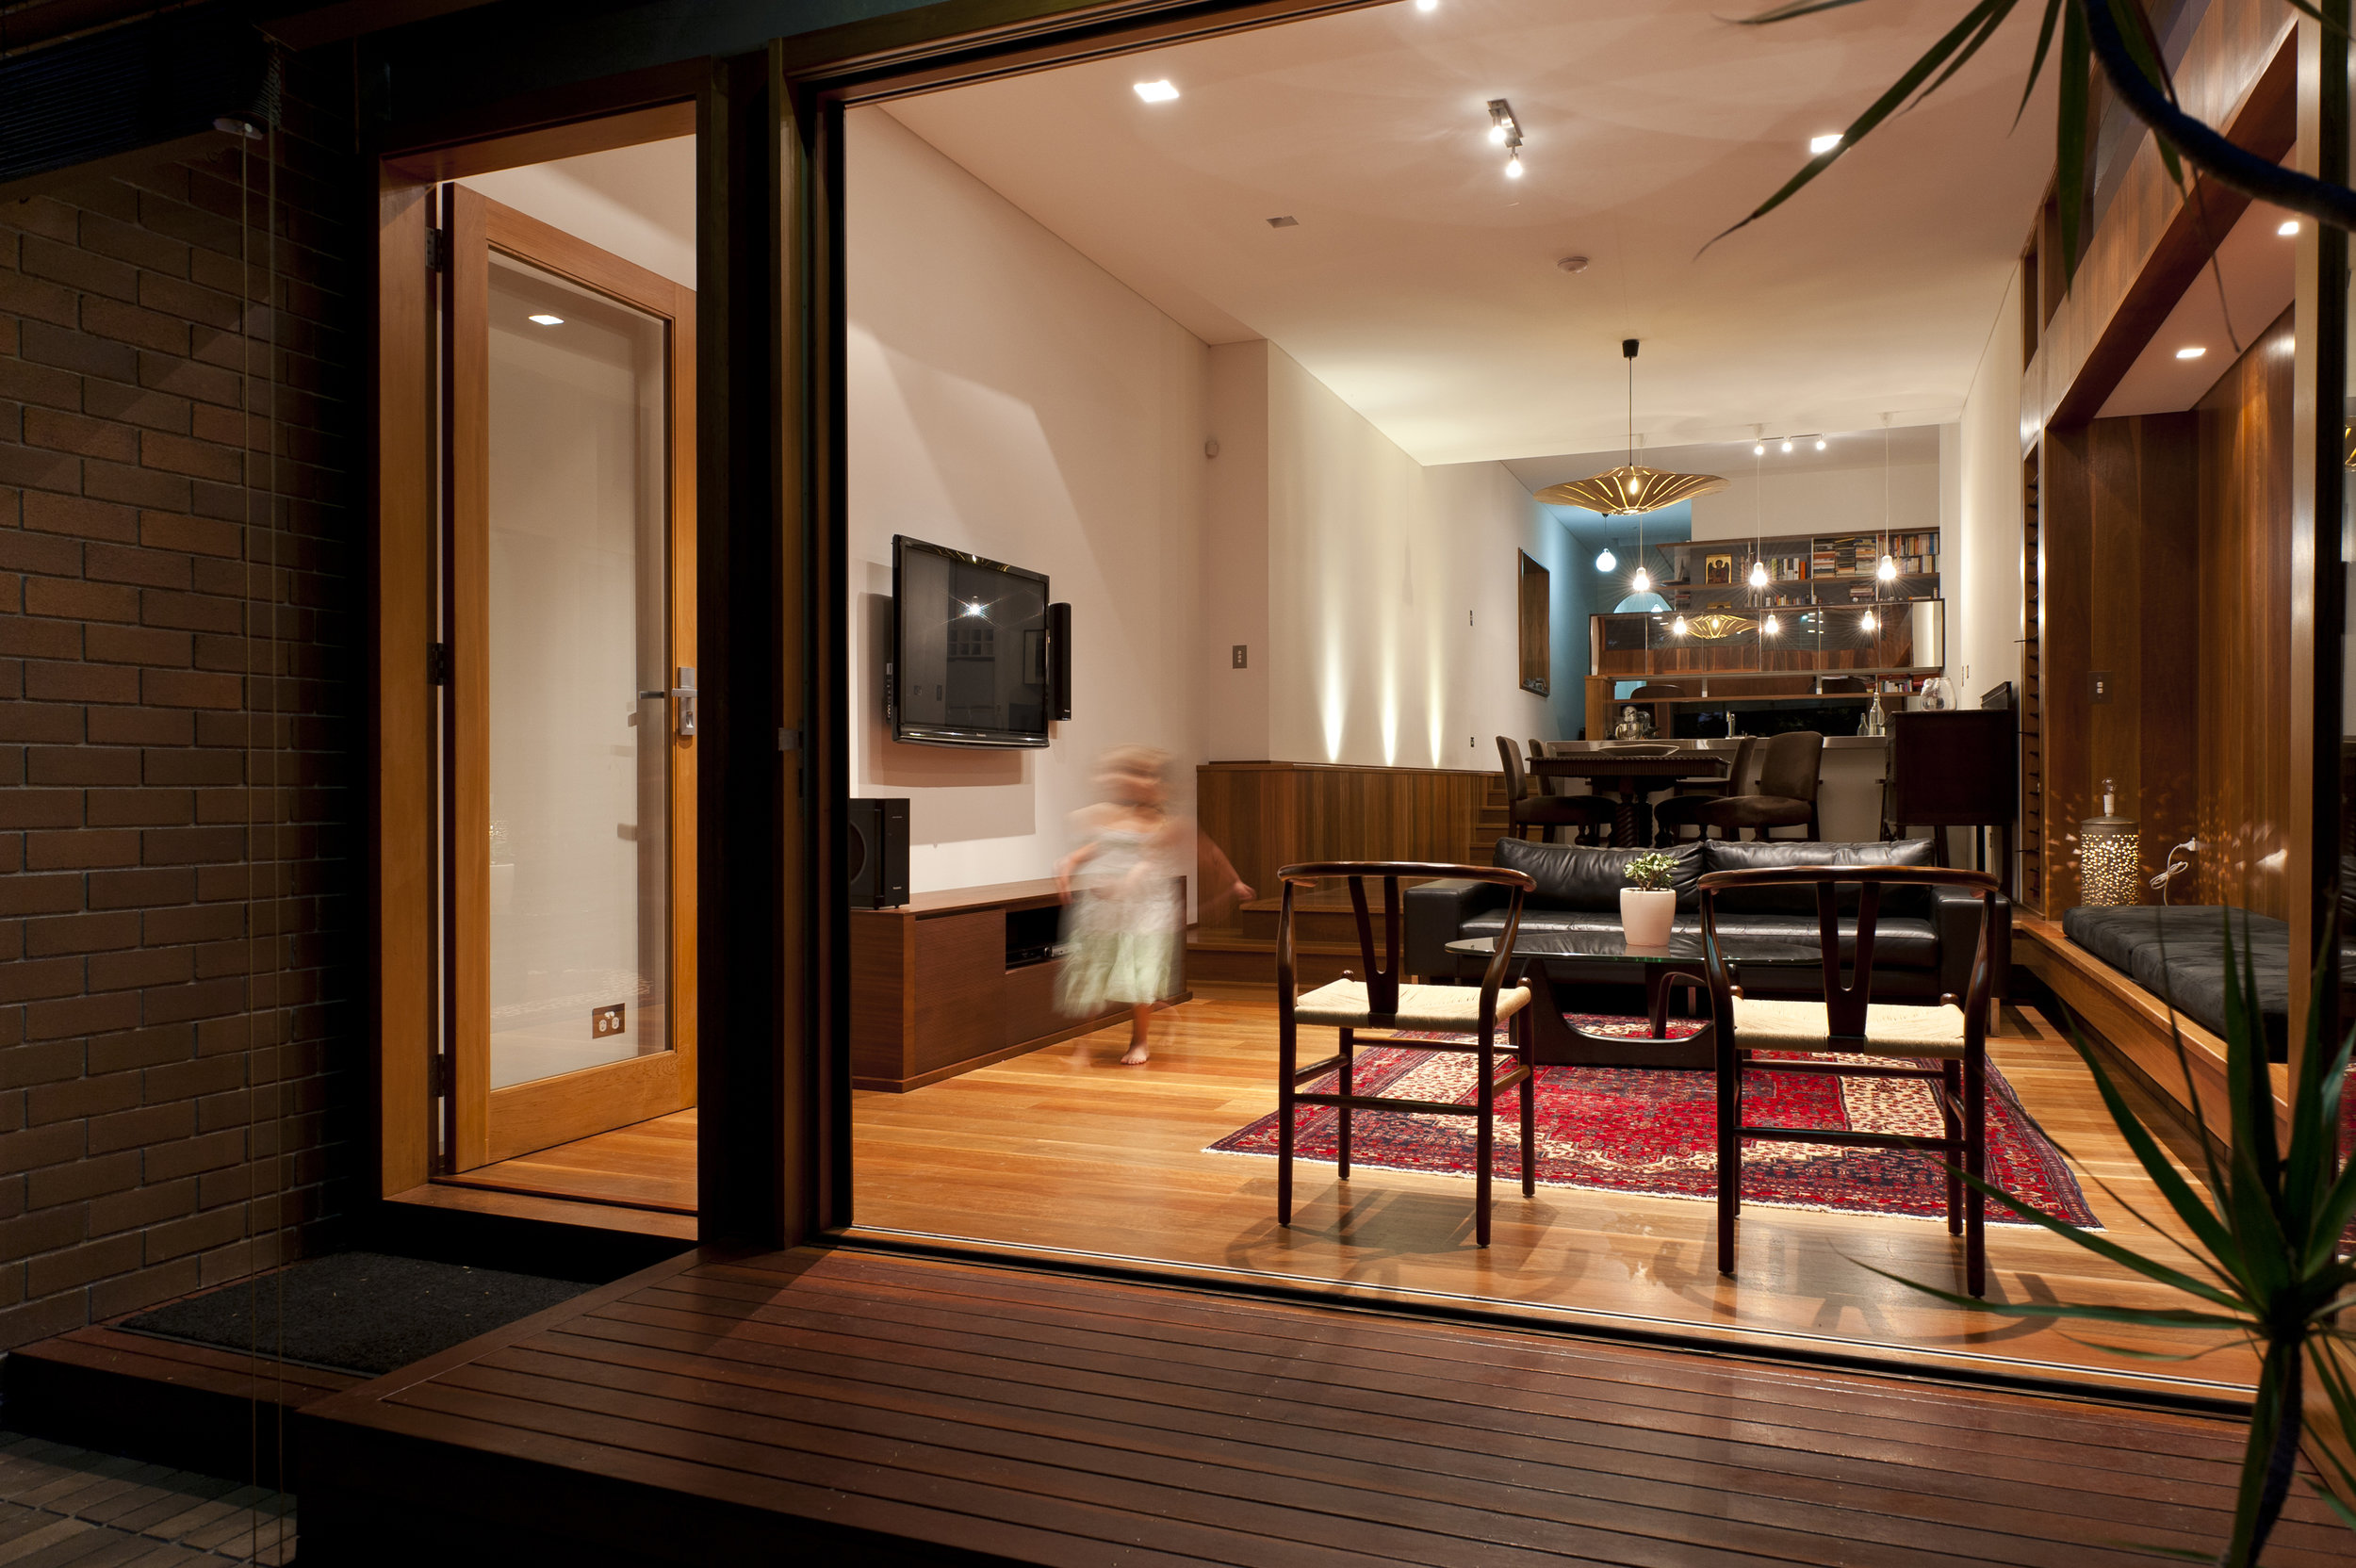 2011027154-00-KensingtonHouse-JohnSlaytor.jpg